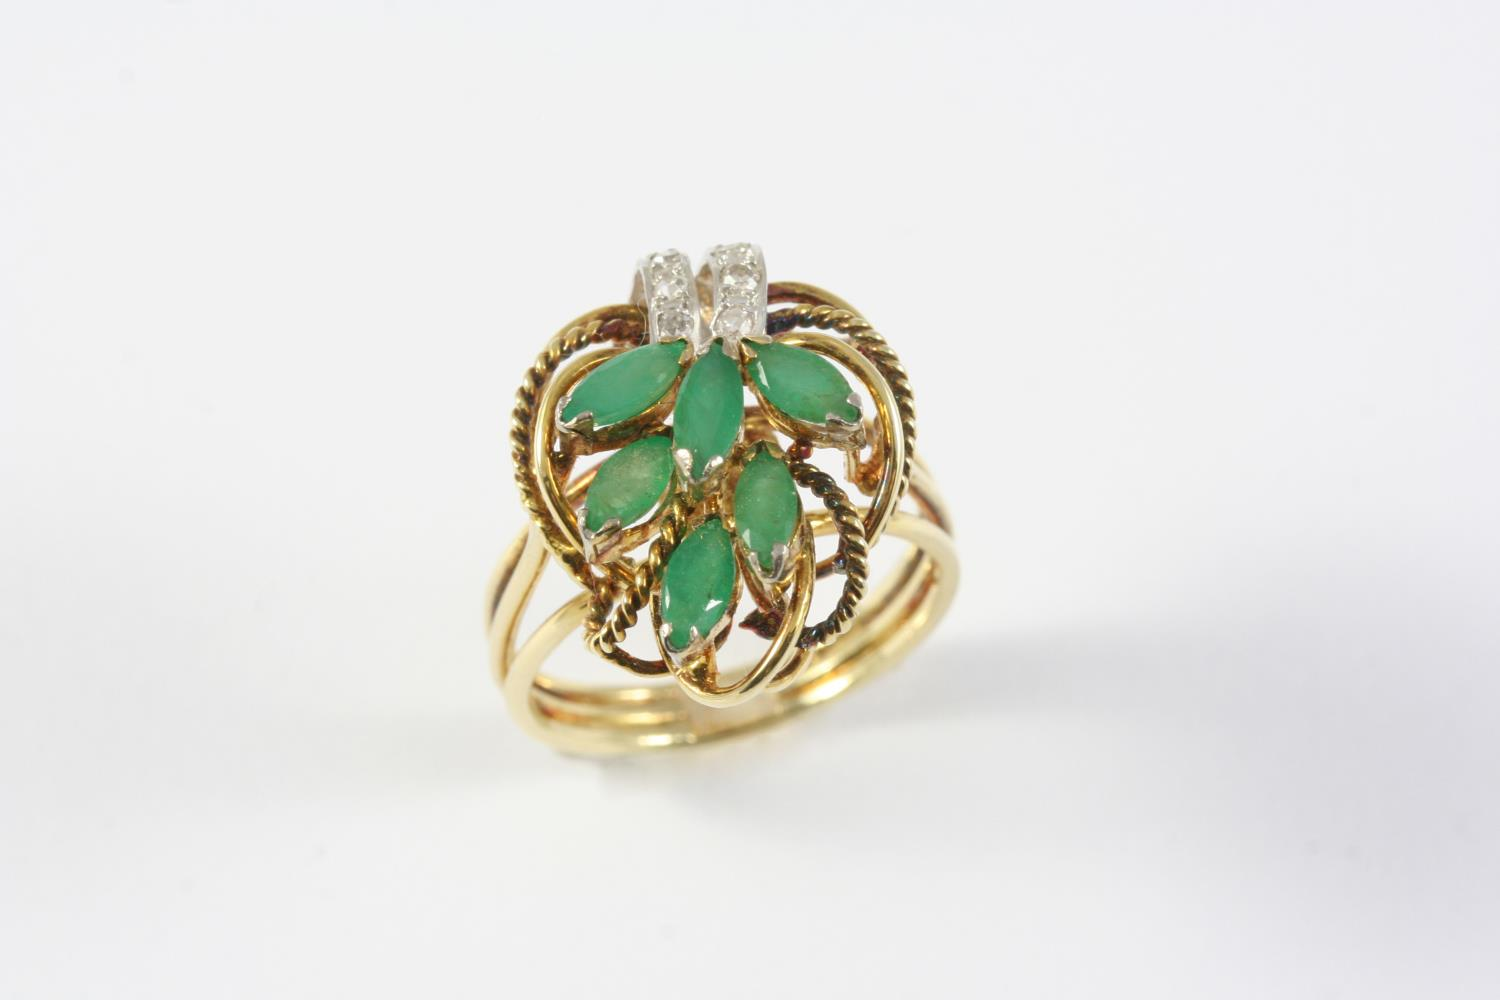 A CHRYSOPRASE AND DIAMOND RING mounted with marquise-cut chrysoprase and circular-cut diamonds in